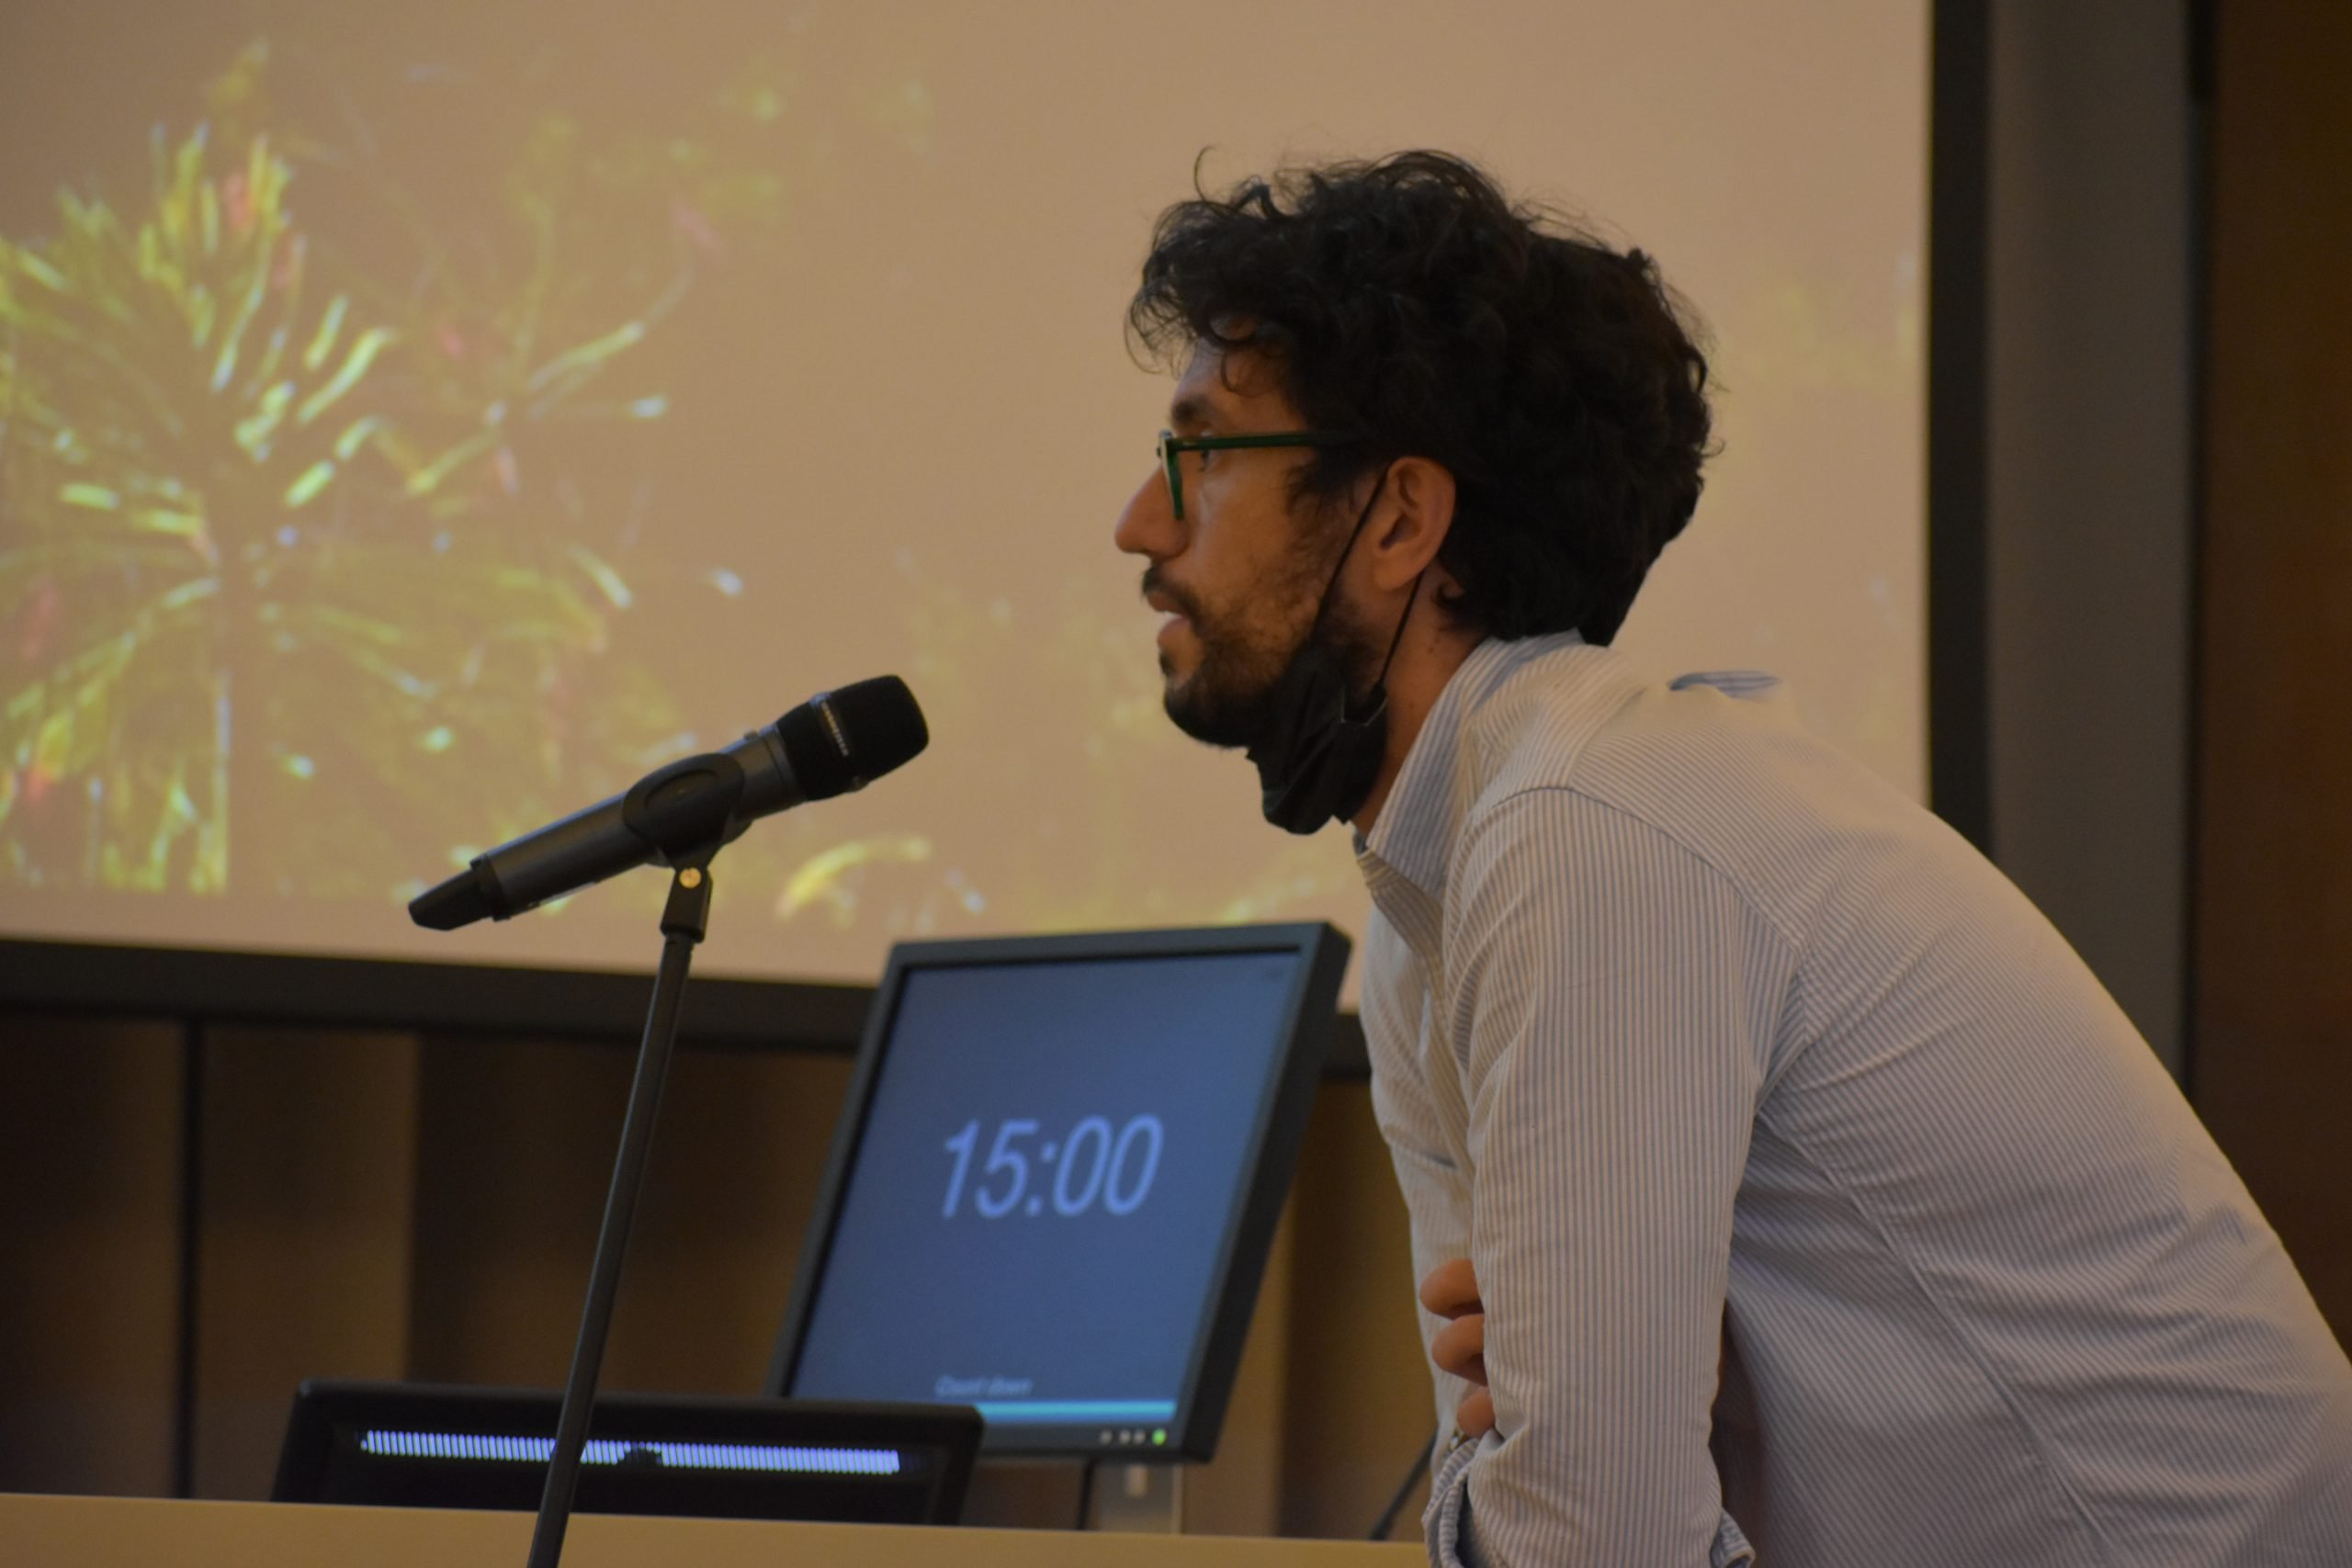 Luca Braga, Functional Cell Biology Group Leader and ICGEB Alumnus at the 26th Annual Symposium in Trieste